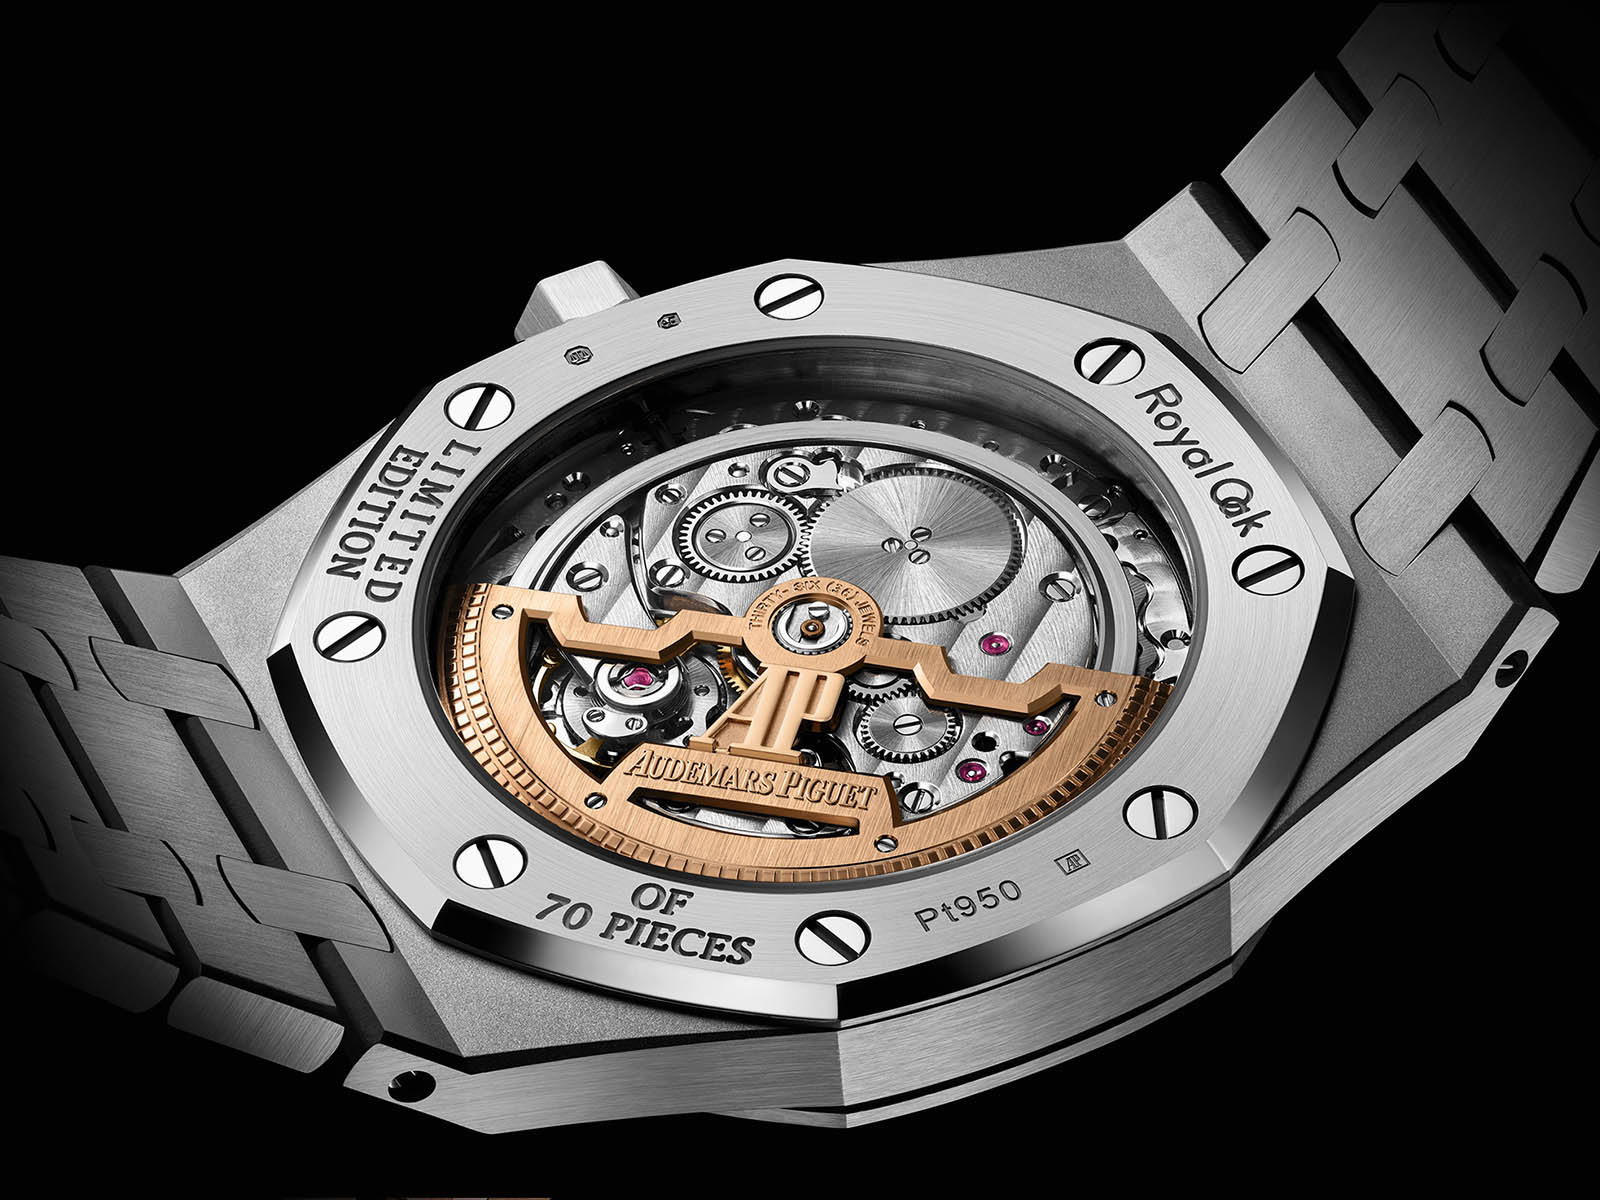 15206pt-oo-1240pt-01-audemars-piguet-royal-oak-jumbo-extra-thin-platinum-4.jpg